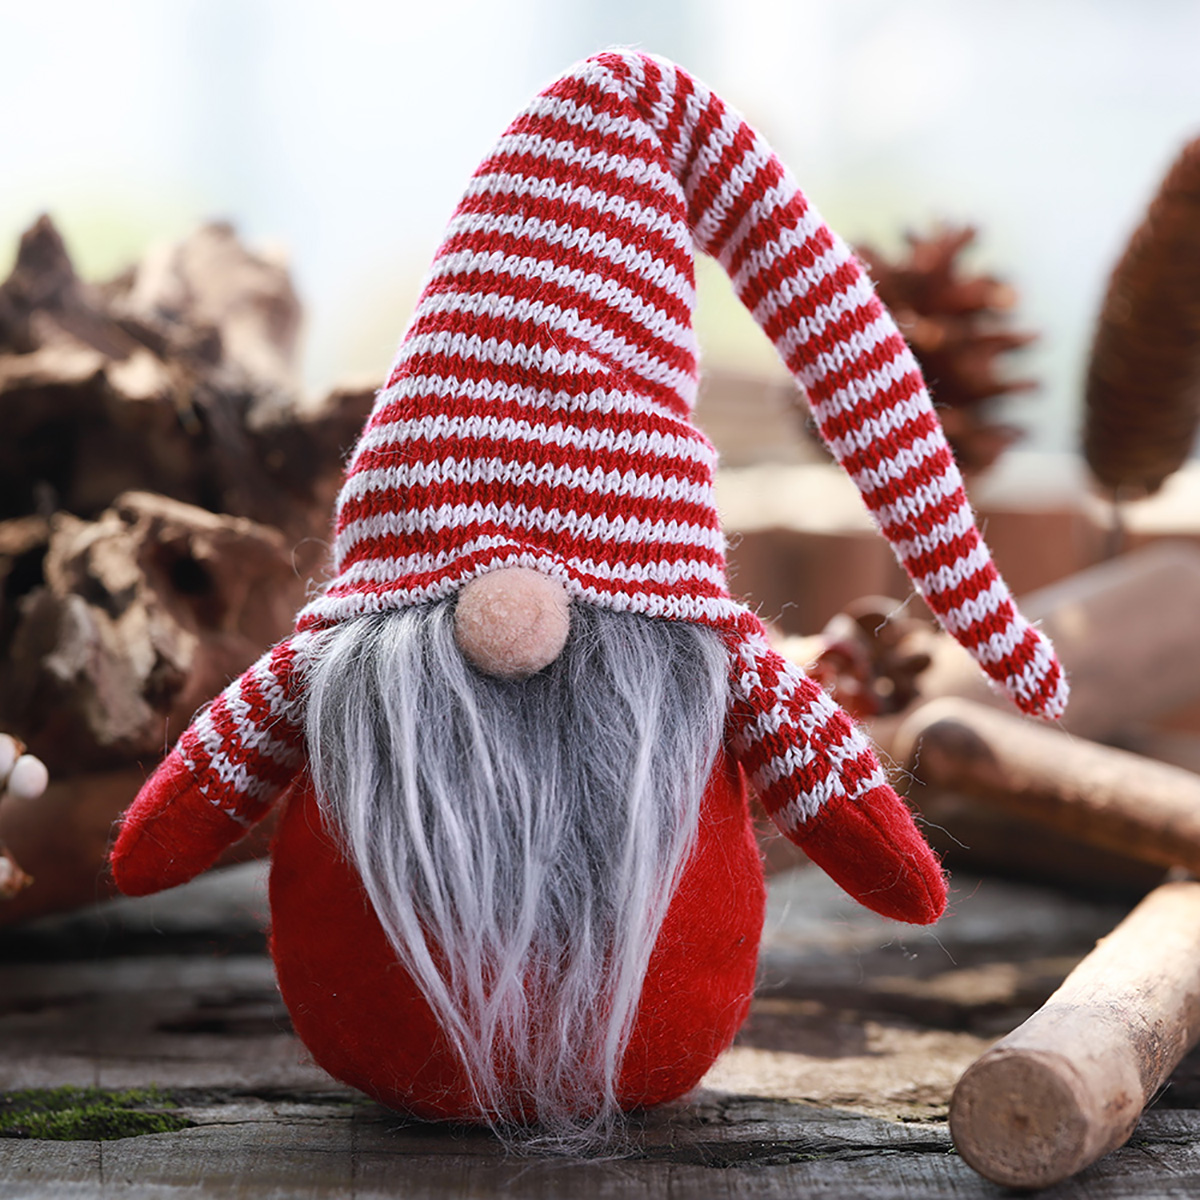 Non-Woven Hat With Long Legs Handmade Gnome Santa Christmas Figurines Ornament Decorations Toys - Photo: 8